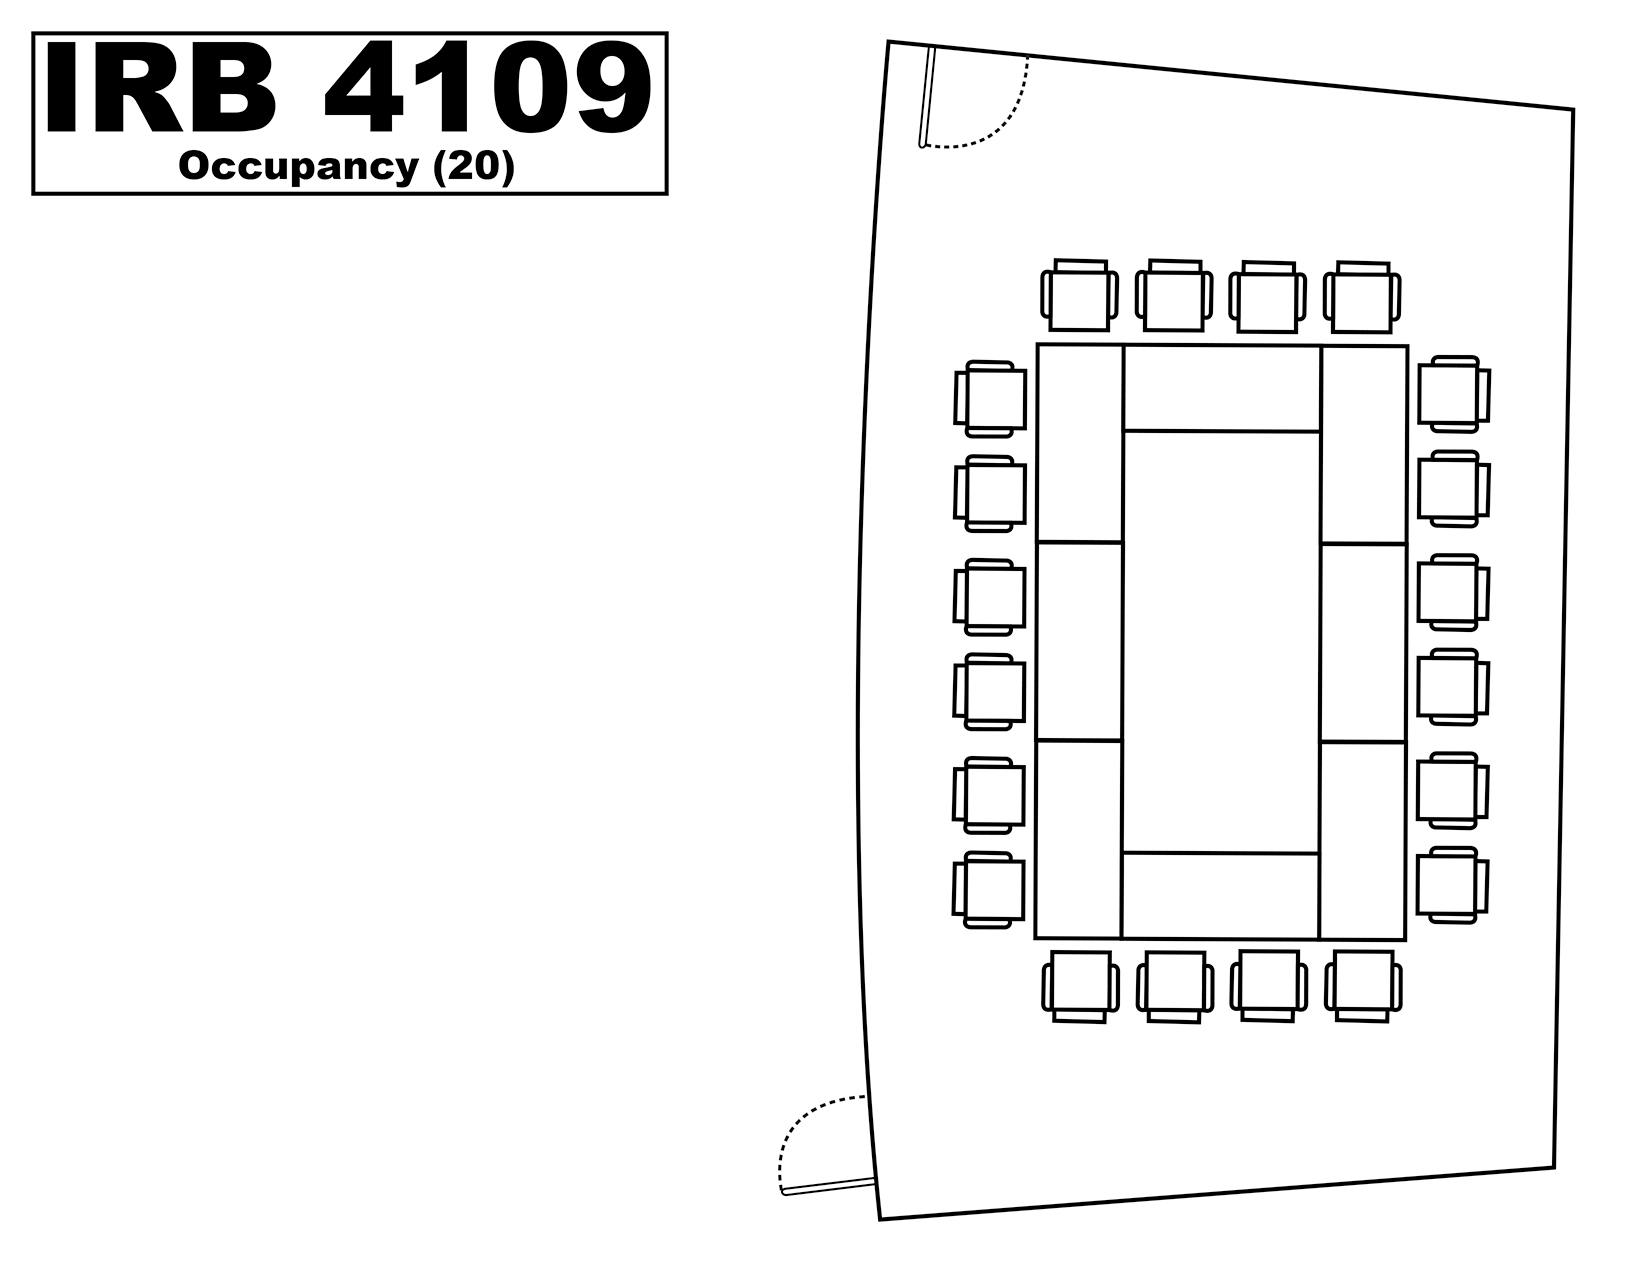 IRB4109 floorplan